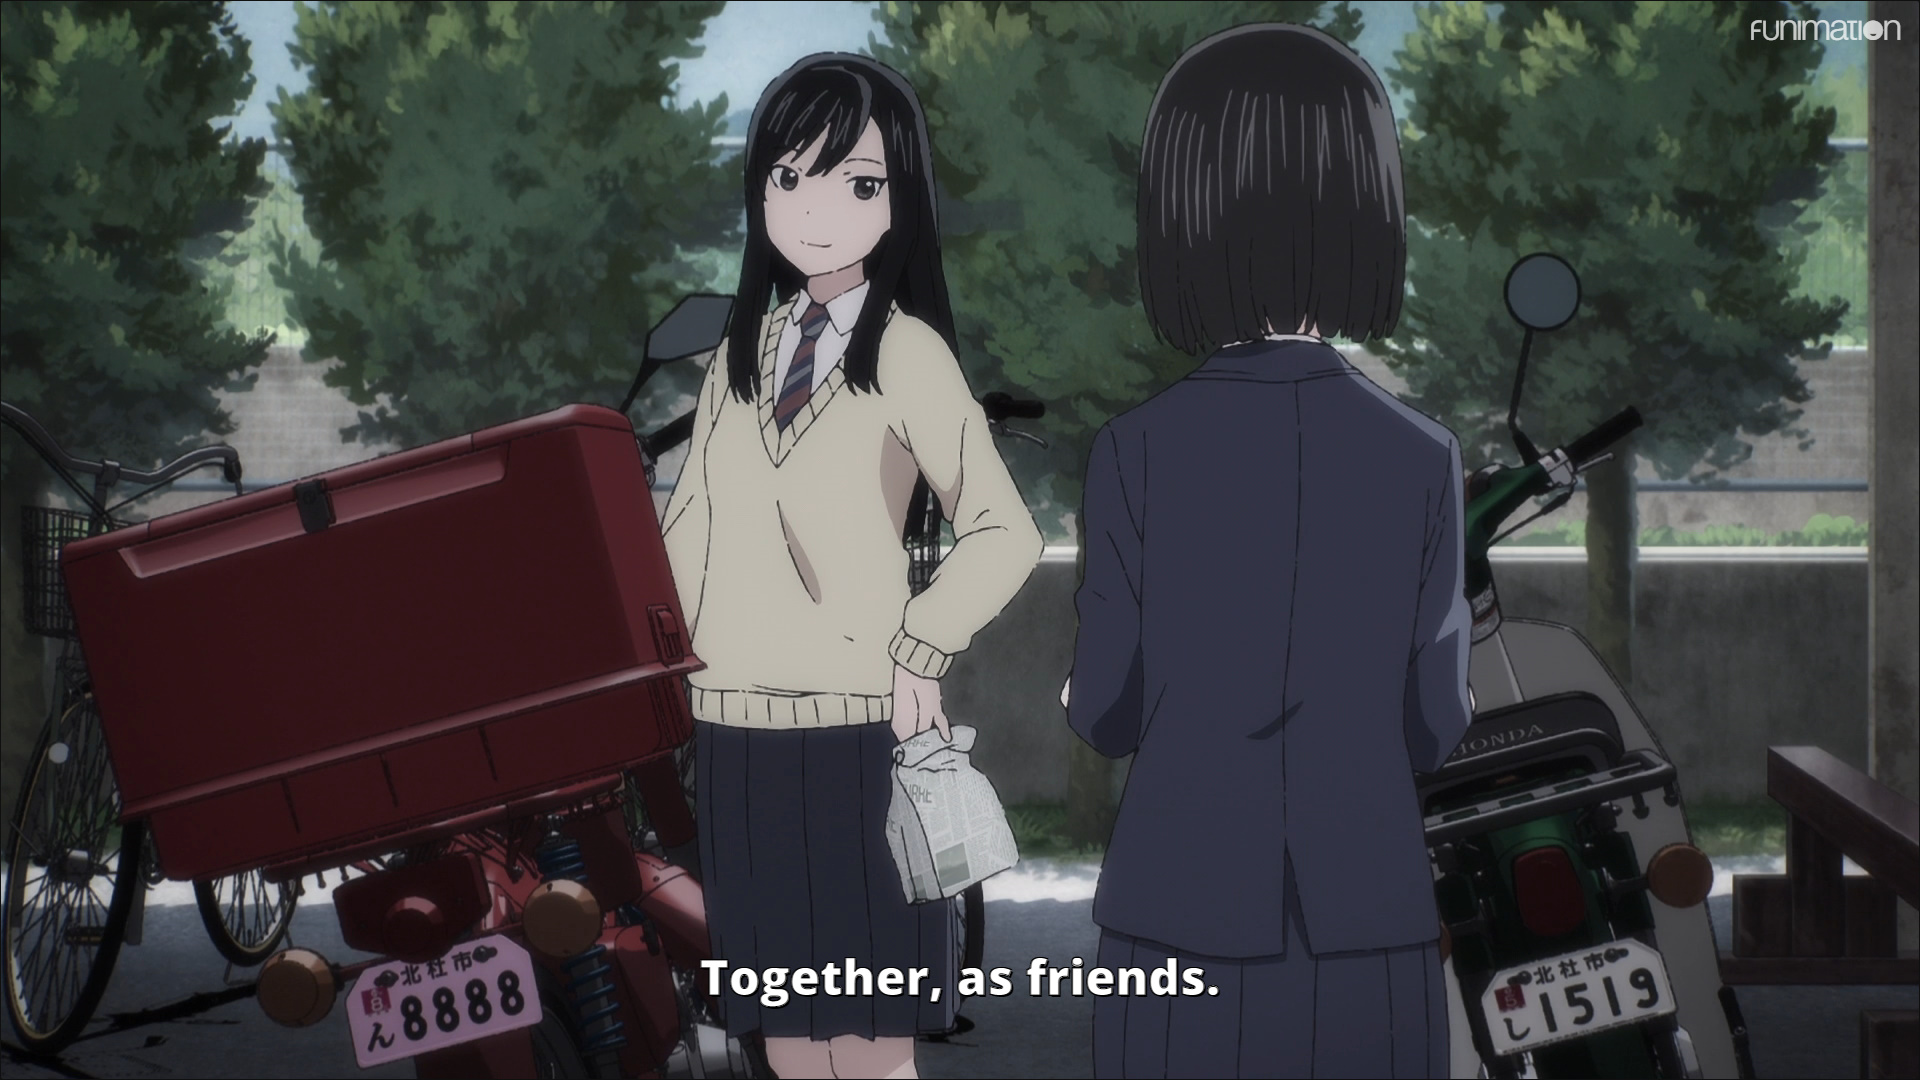 """Reiko discusses how great it is to eat lunch sitting on their bikes, """"Together, as friends."""""""